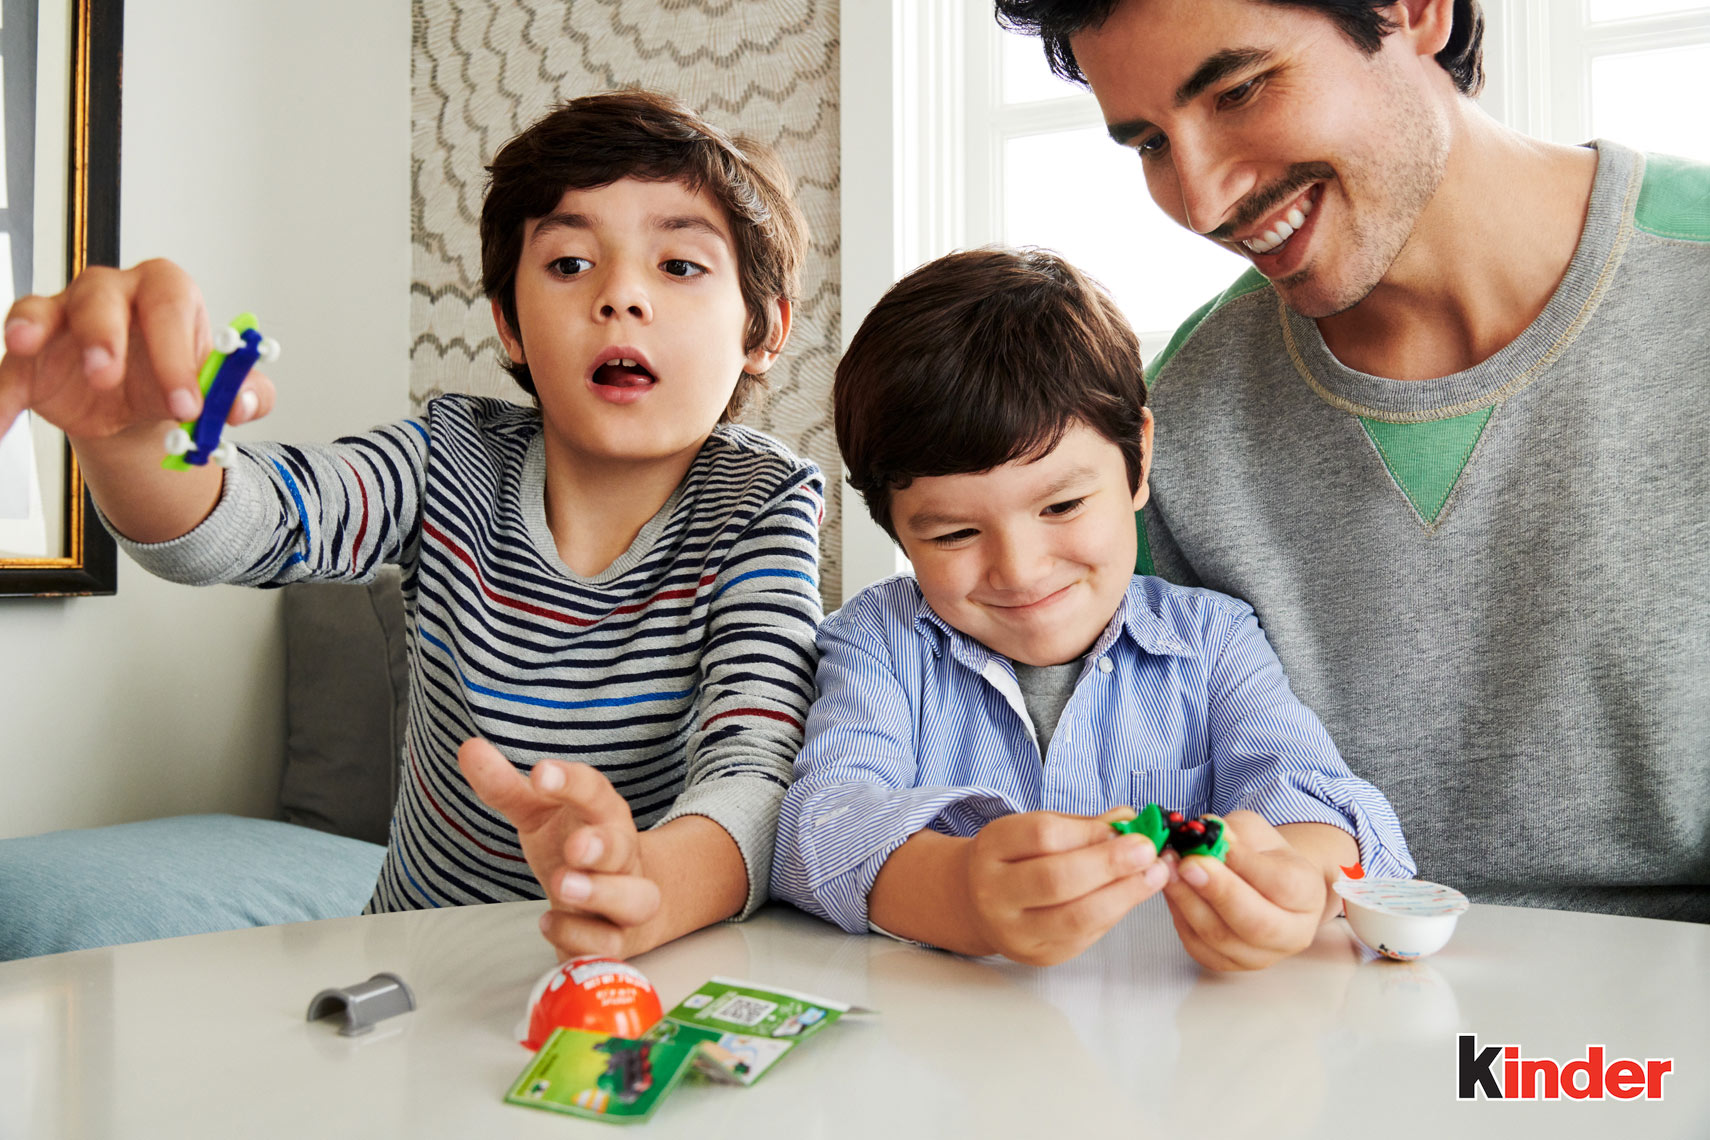 13_HISP_Kitchen_Dad_Sons_0364_01a